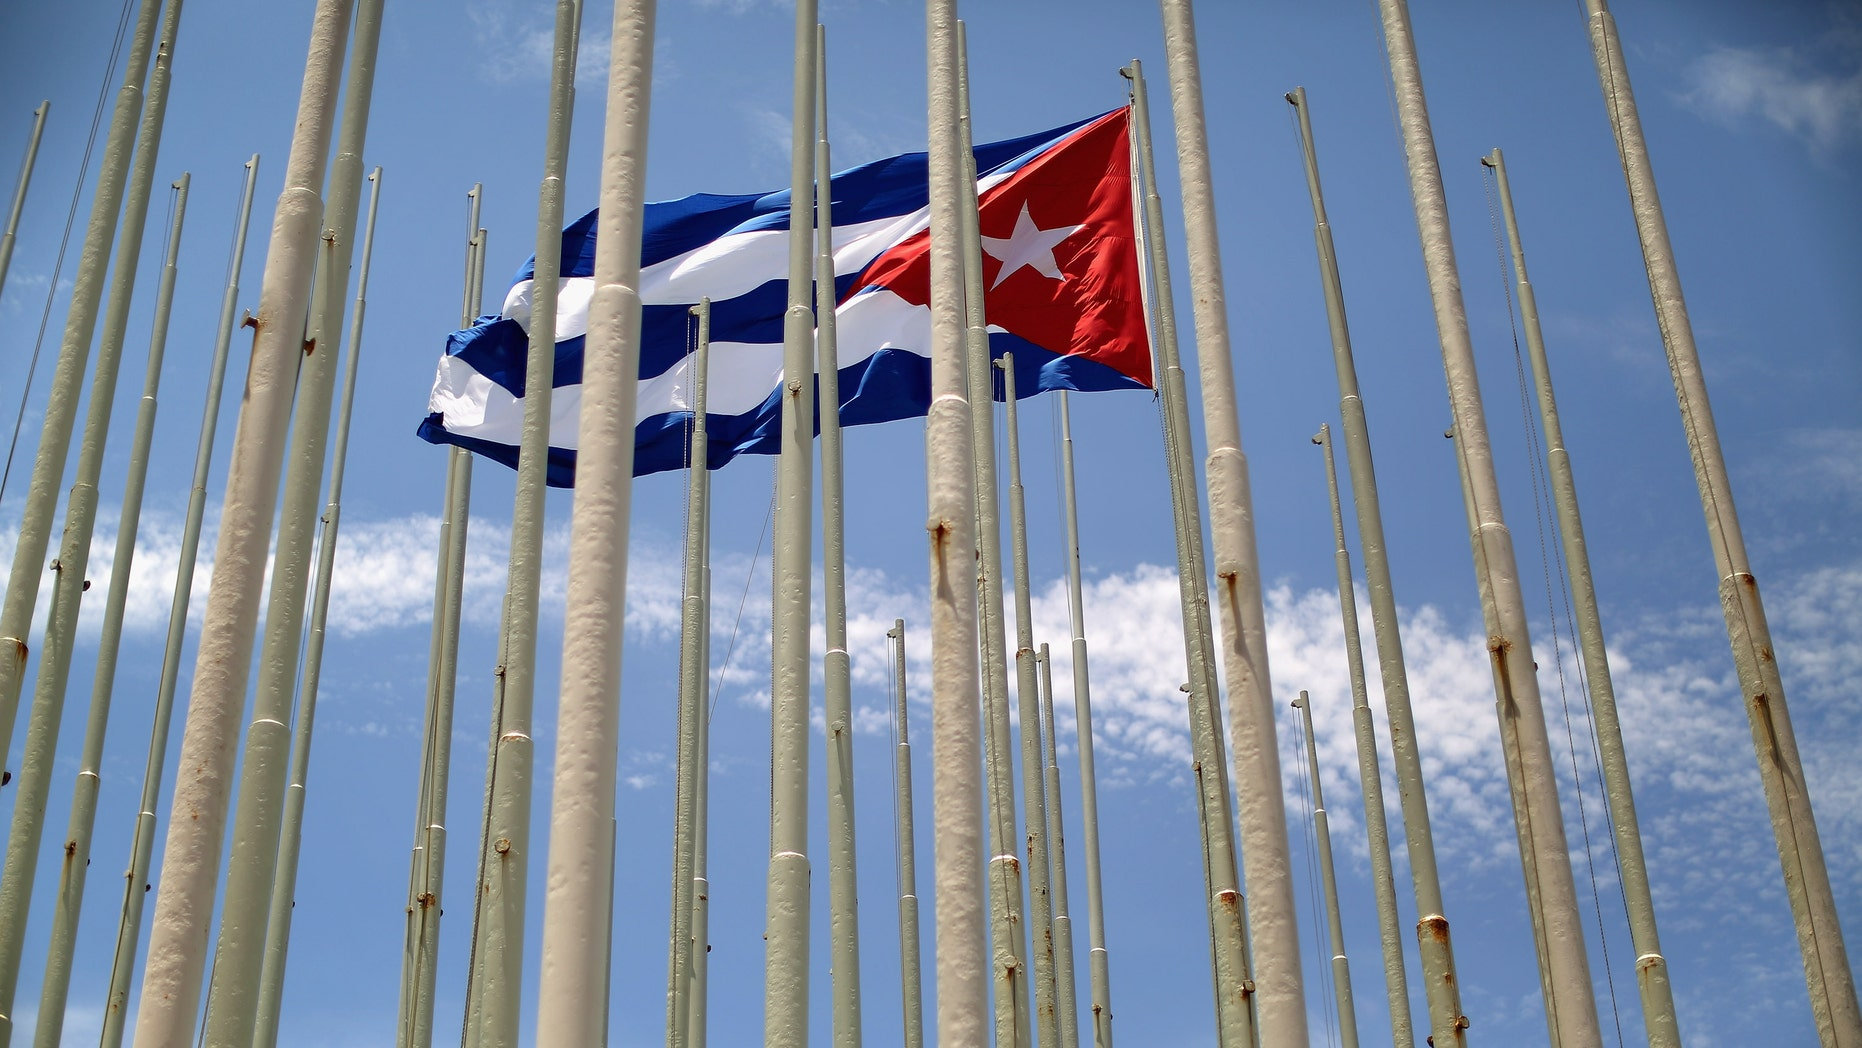 HAVANA, CUBA - AUGUST 13:  A lone Cuban flag is raised inside the 'Wall of Flags' across the street from the U.S. Embassy August 13, 2015 in Havana, Cuba. Cuba planted 138 flag poles in February 2006 in an attempt to obsucre an electronic message ticker on the outside of the U.S. Interests Section building. U.S. Secretary of State John Kerry will visit Havana Friday and raise the American flag at the reopened U.S. embassy, a symbolic act after the the two former Cold War enemies reestablished diplomatic relations in July.  (Photo by Chip Somodevilla/Getty Images)